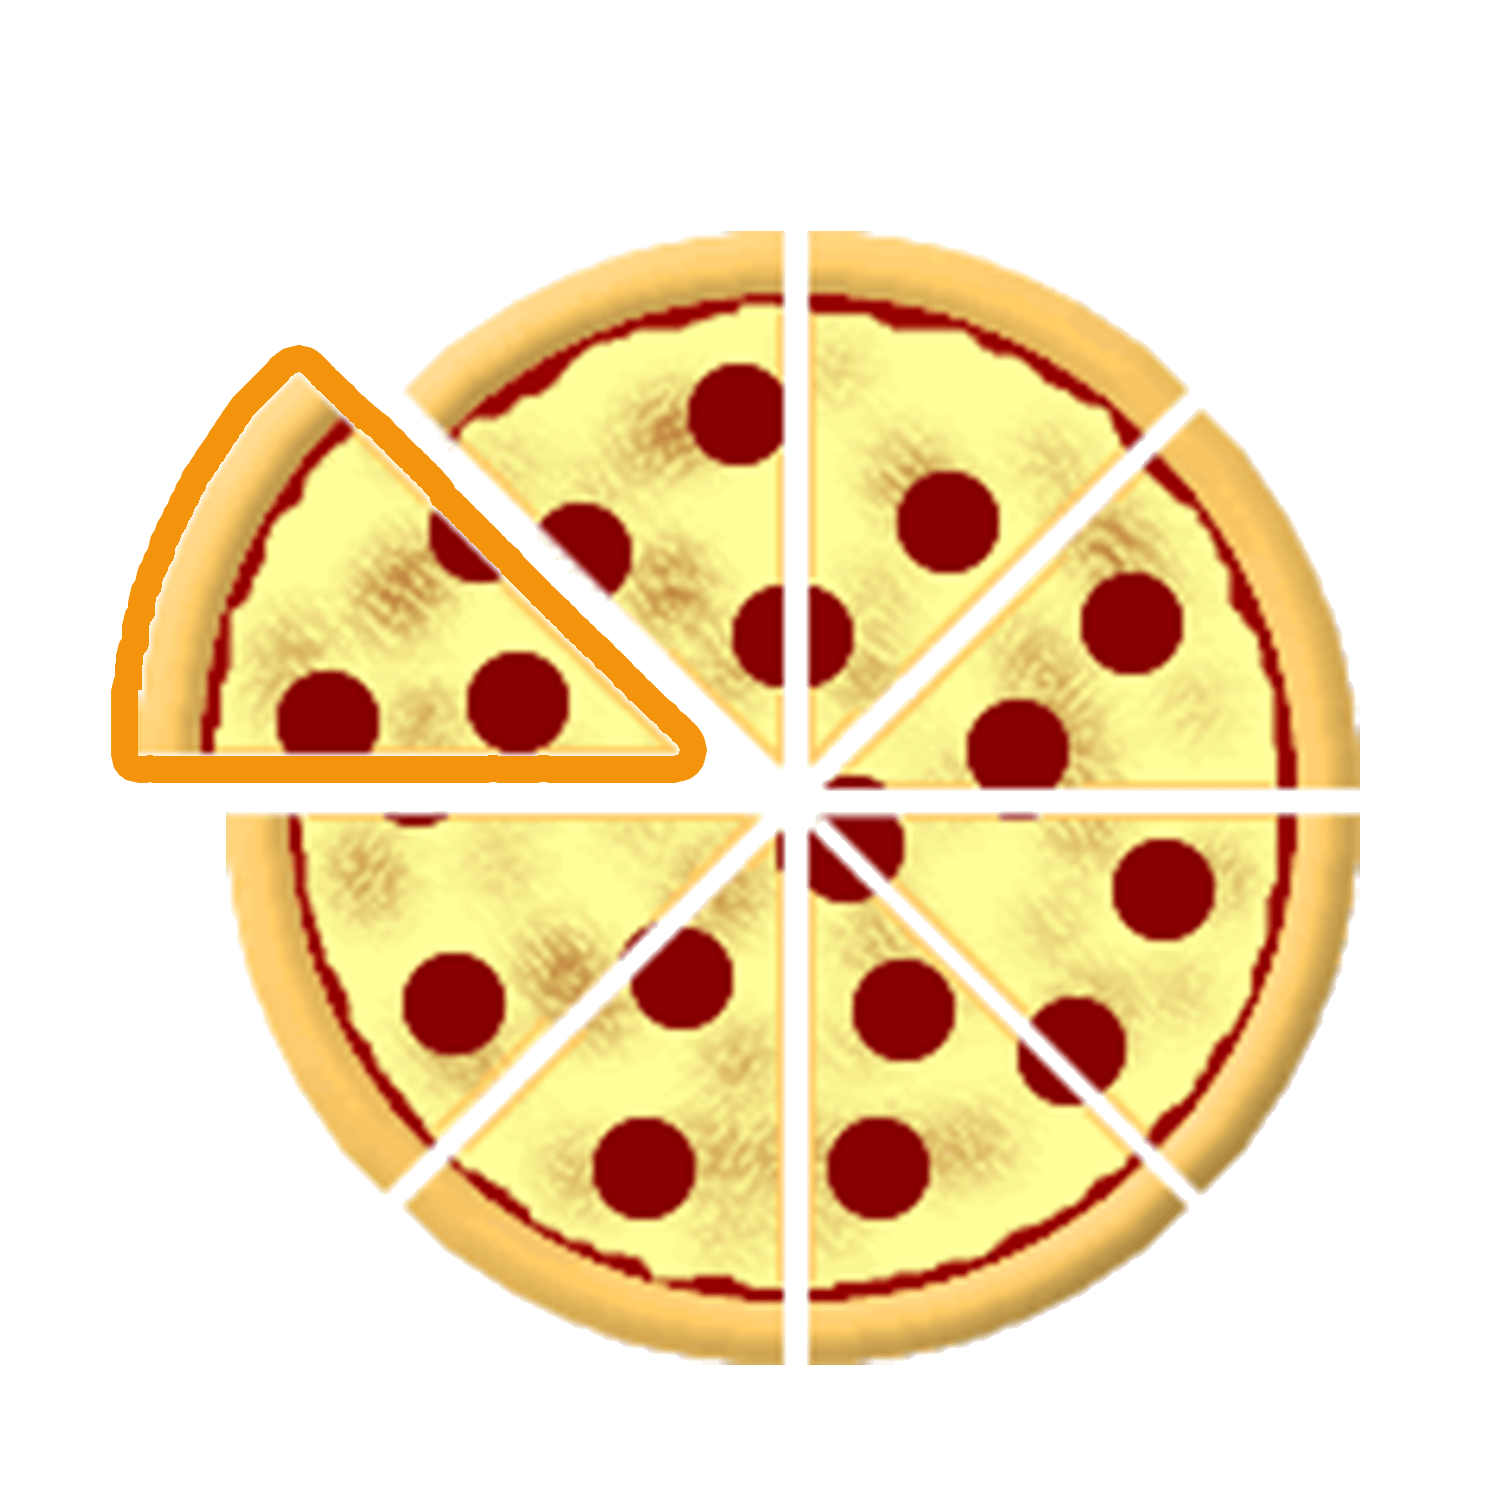 Pizza Clipart Pizza Fraction Pizza Pizza Fraction